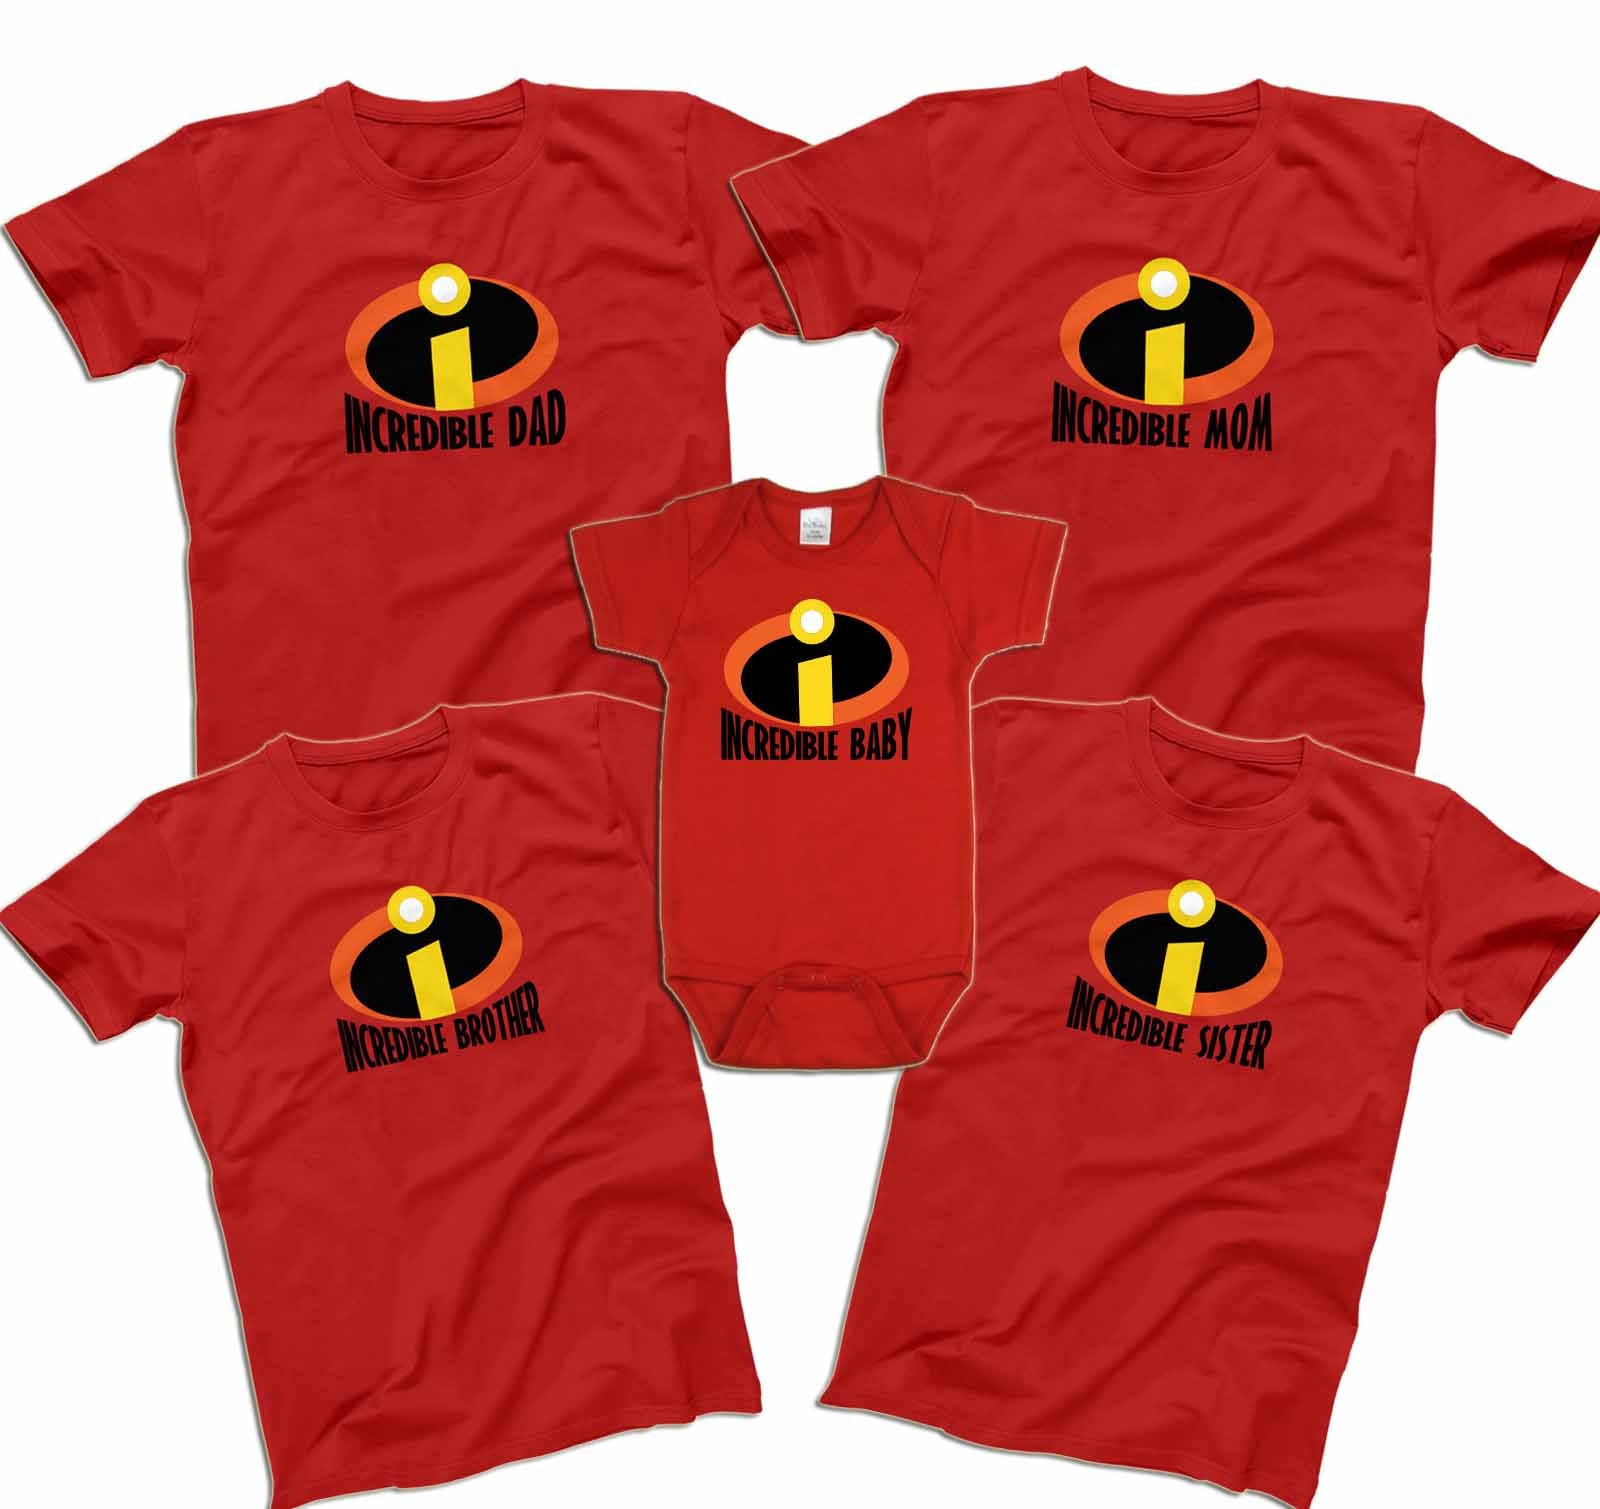 5d3be905 Incredibles Family Shirts Mr Incredible Mrs Incredible Shirts | Etsy